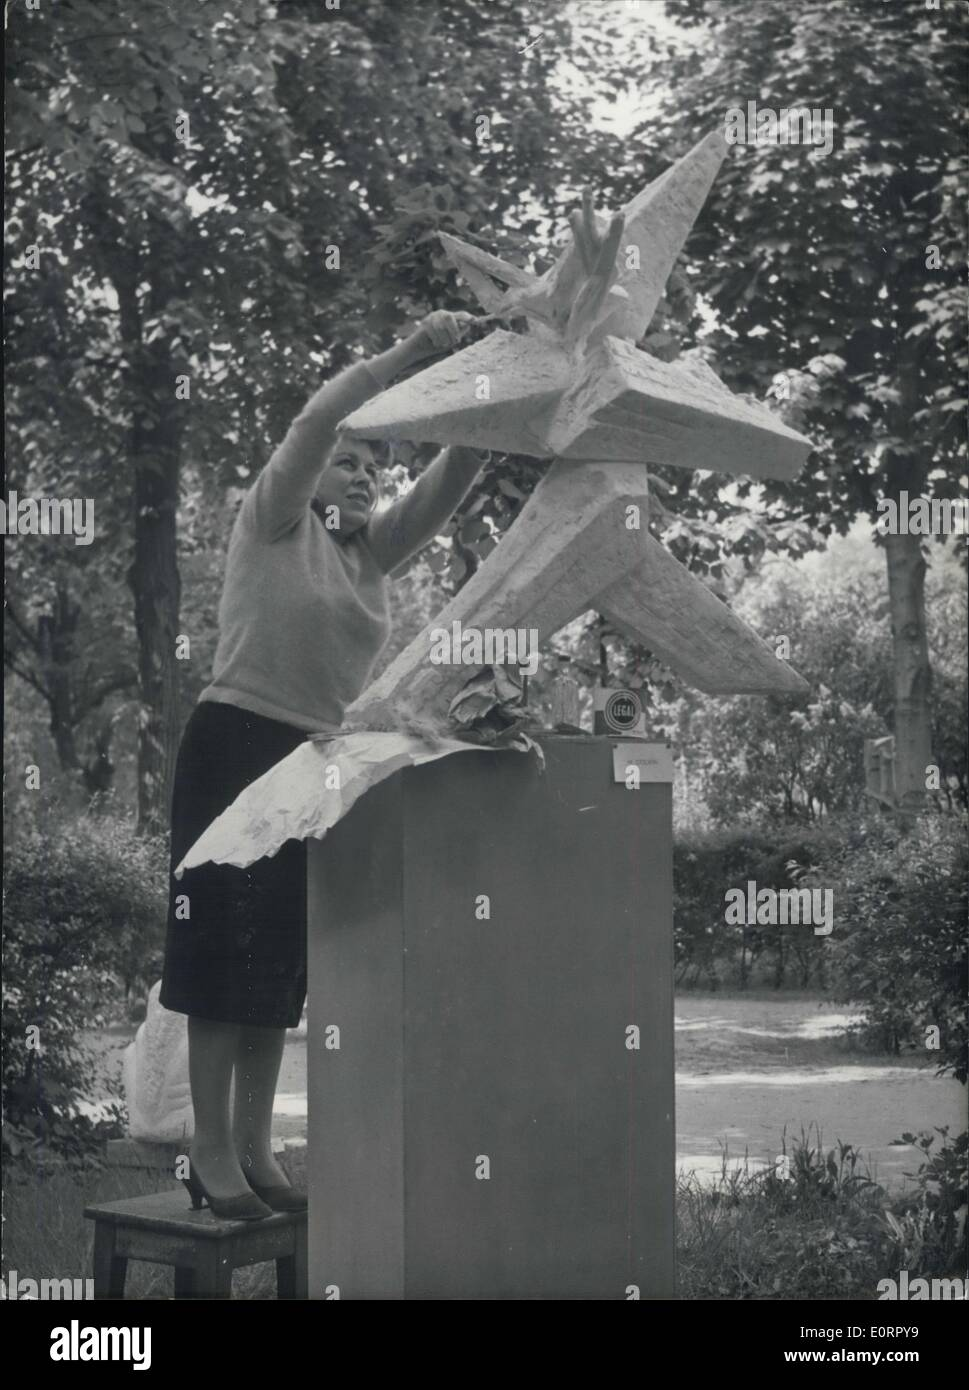 May 04, 1960 - Exhibition of ''Young Sculpture'' Opens in Paris: The Annual Exhibition of ''Young Sculpture'' Opened at the Muusee Rodin, Paris, today. Photo shows One of the Young Artists, ME Colvin Putting Some Finishing touches to her sculptures entitled ''The Southern Cross' - Stock Image